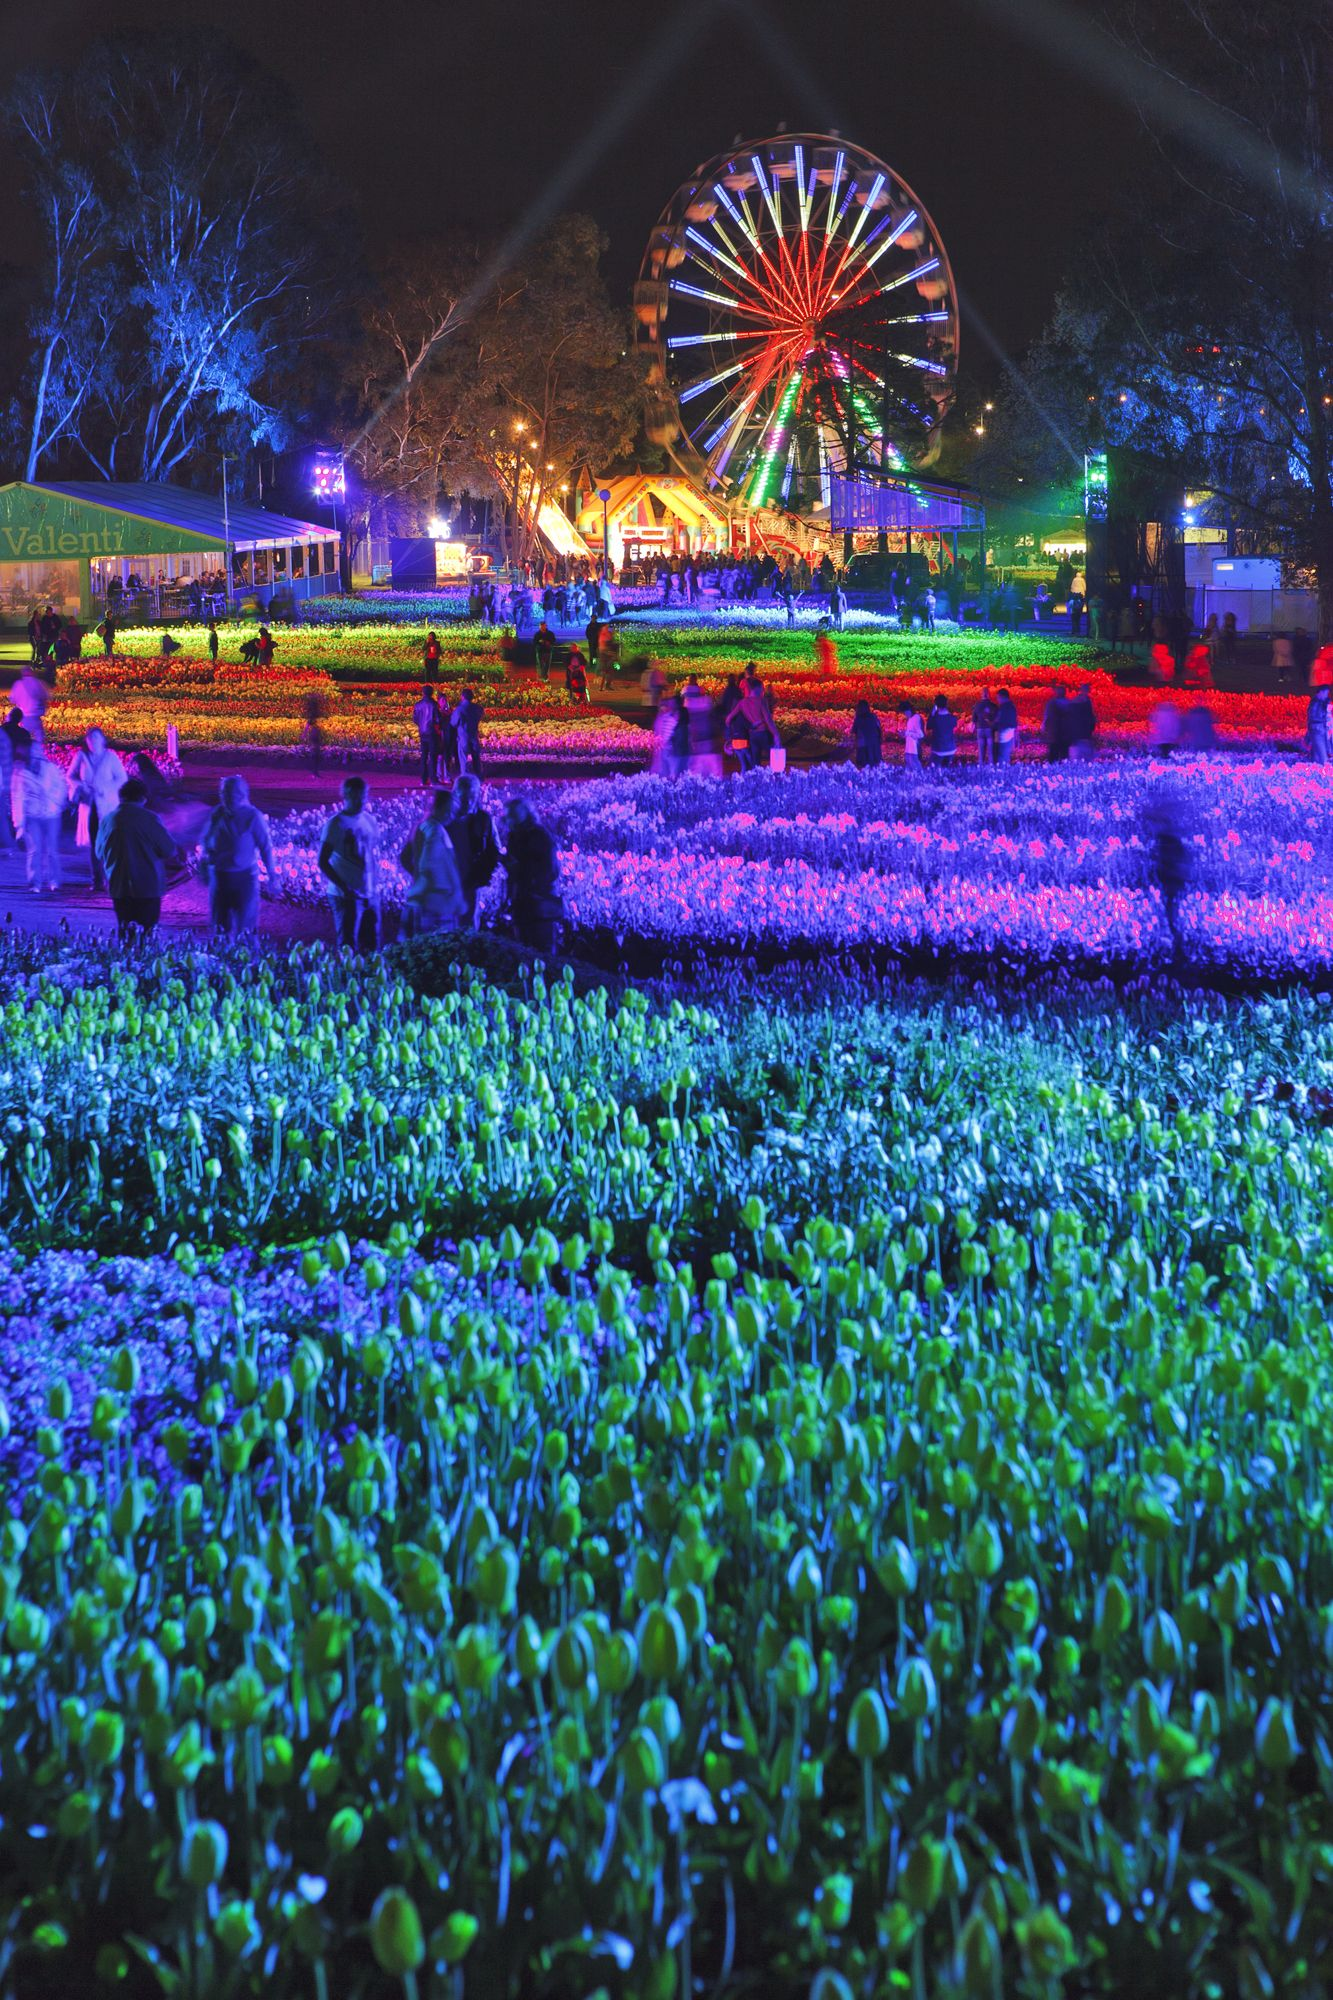 Floriade The Annual Flower Show In Septoct In All Its Nighttime